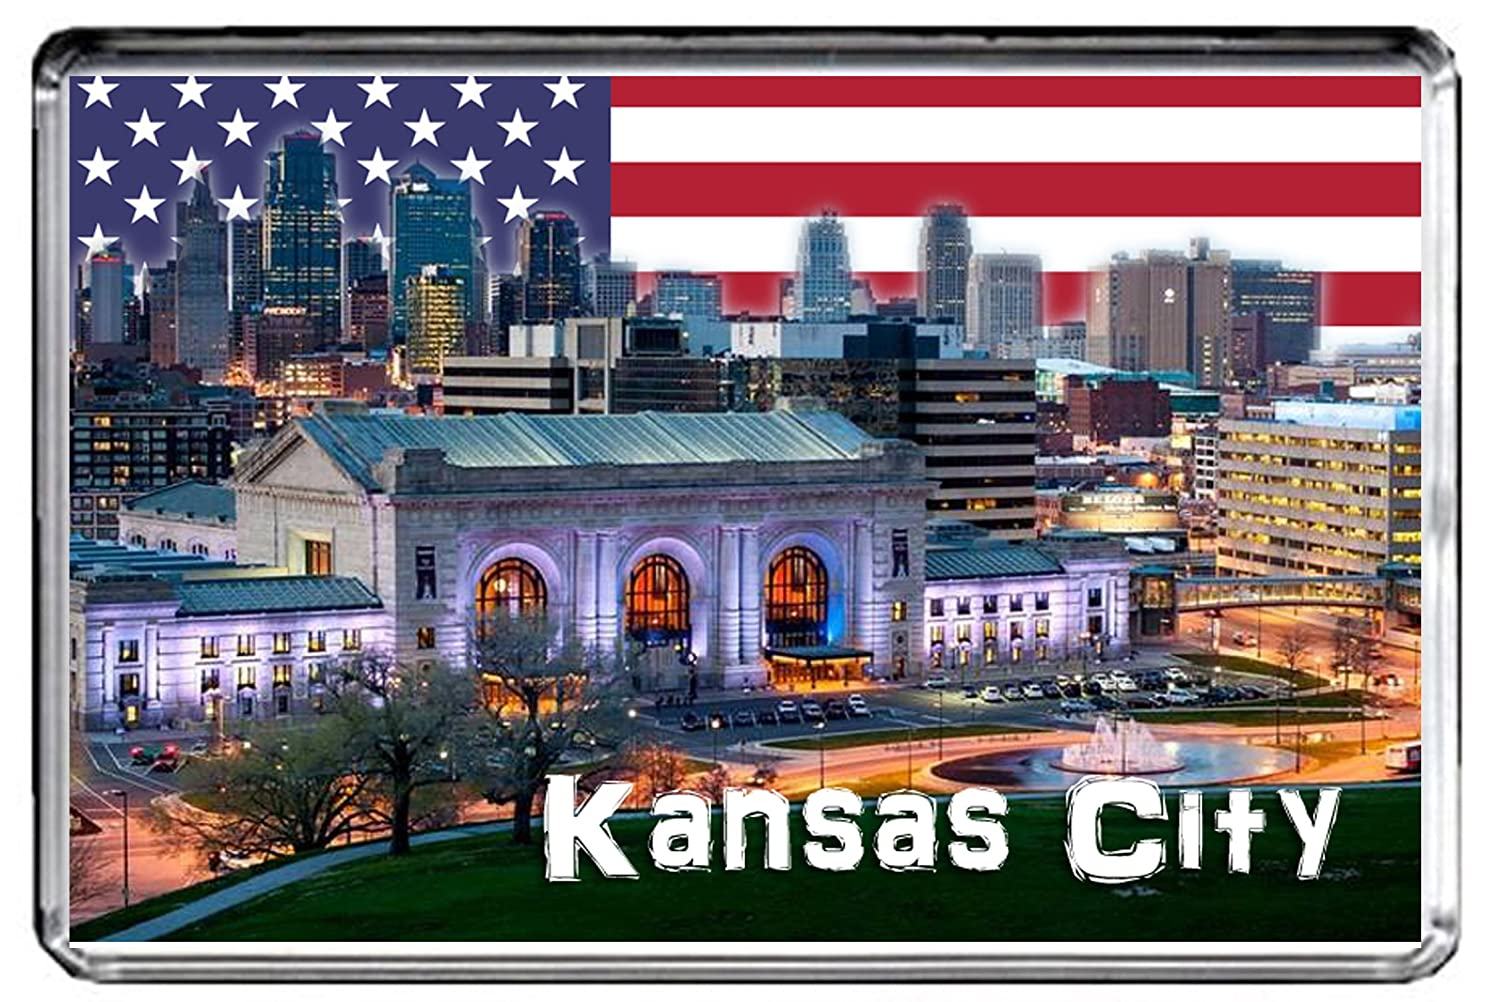 USA E376 KANSAS CITY FRIDGE MAGNET TRAVEL PHOTO REFRIGERATOR MAGNET